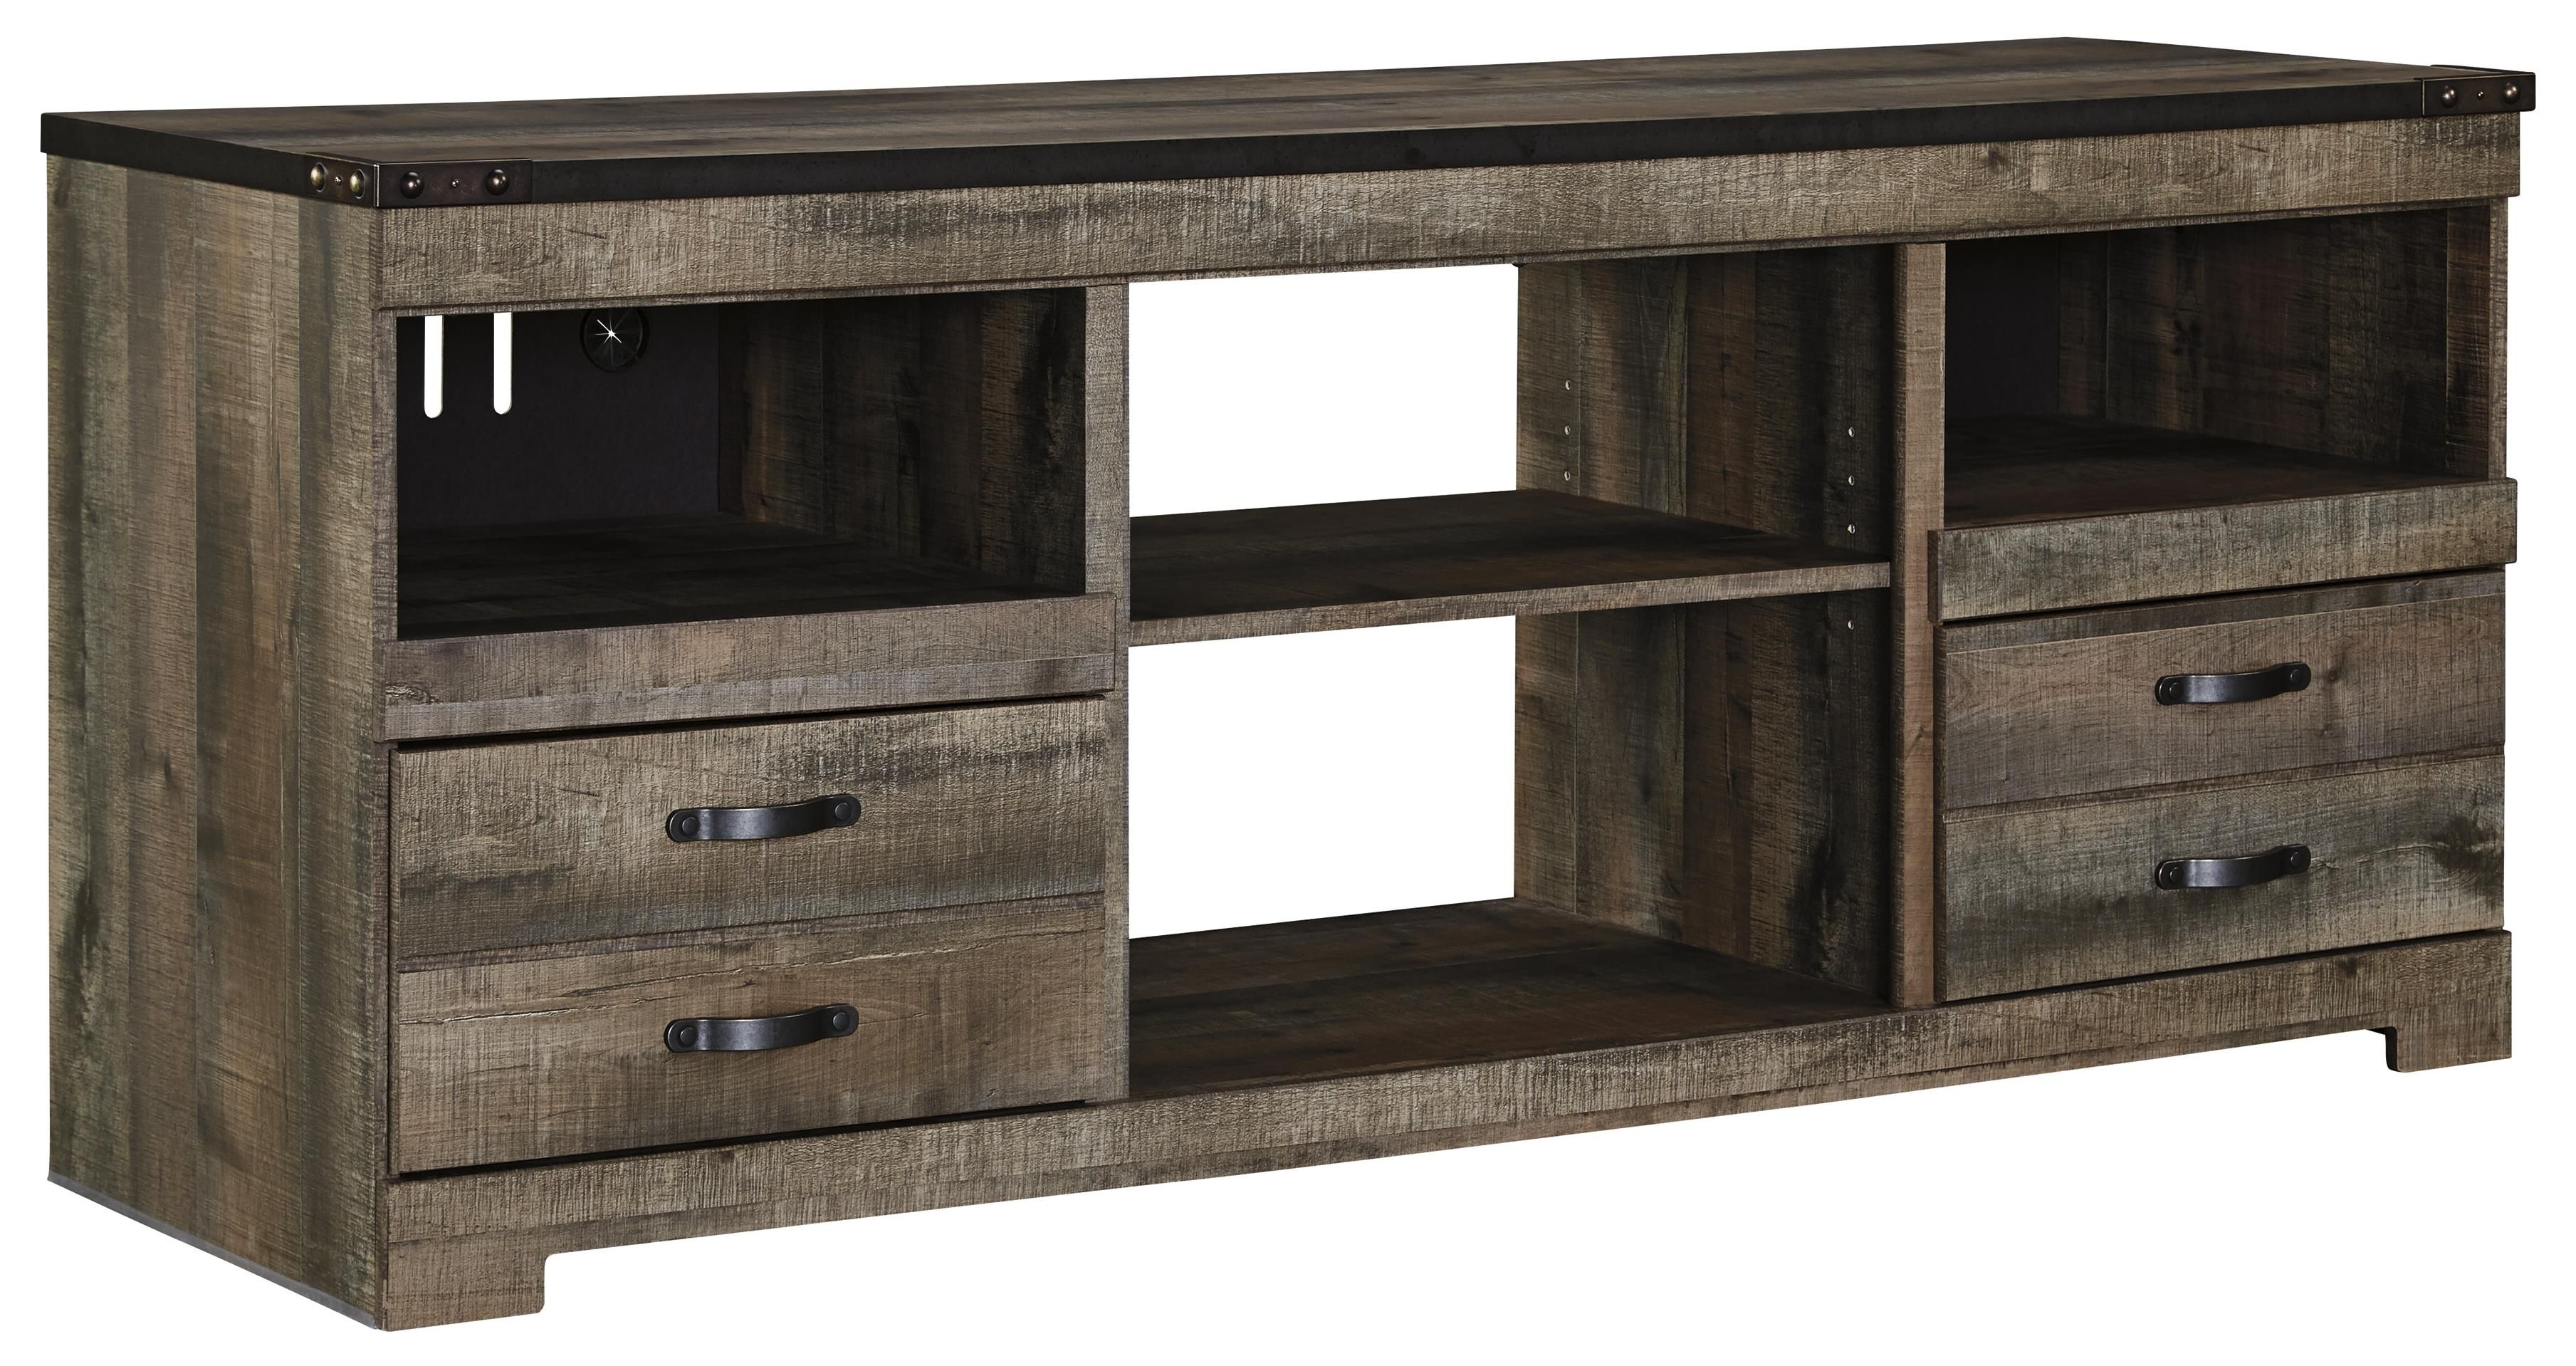 Trinell   Brown   LG TV Stand W/Fireplace Option W446 68